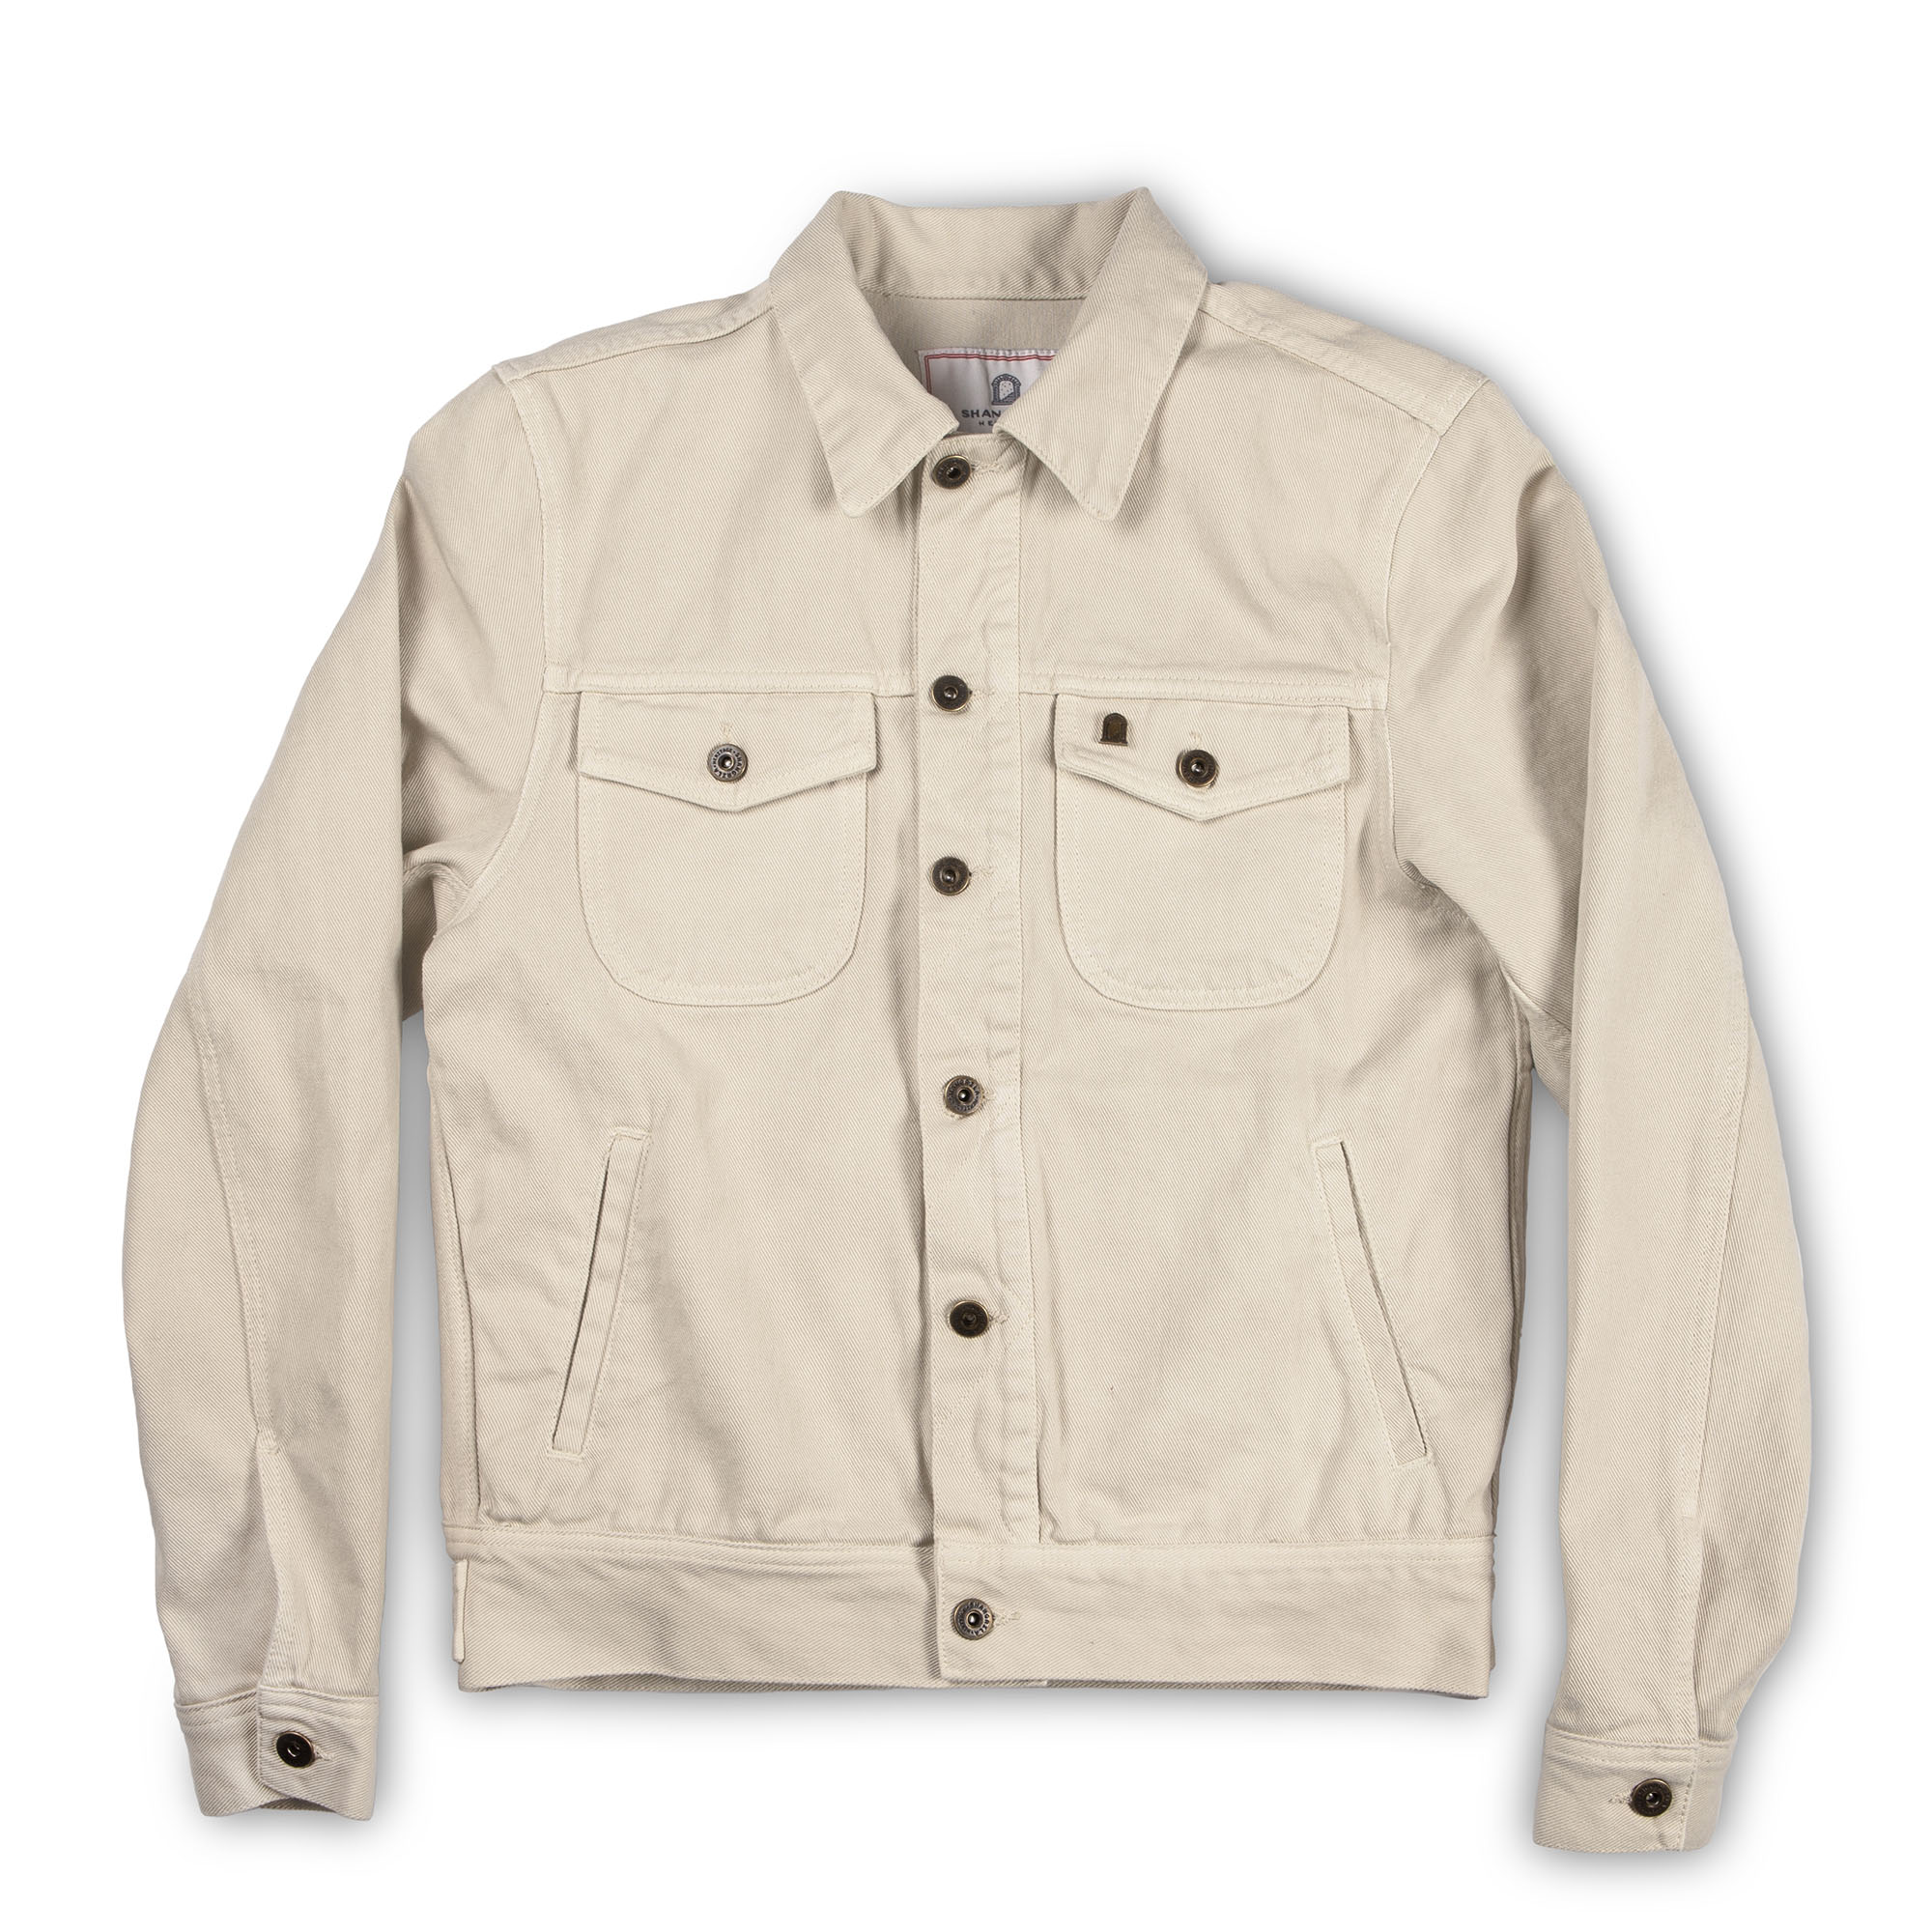 shangri-la-heritage-new-single-rider-ivory-canvas-jacket-still-life-front